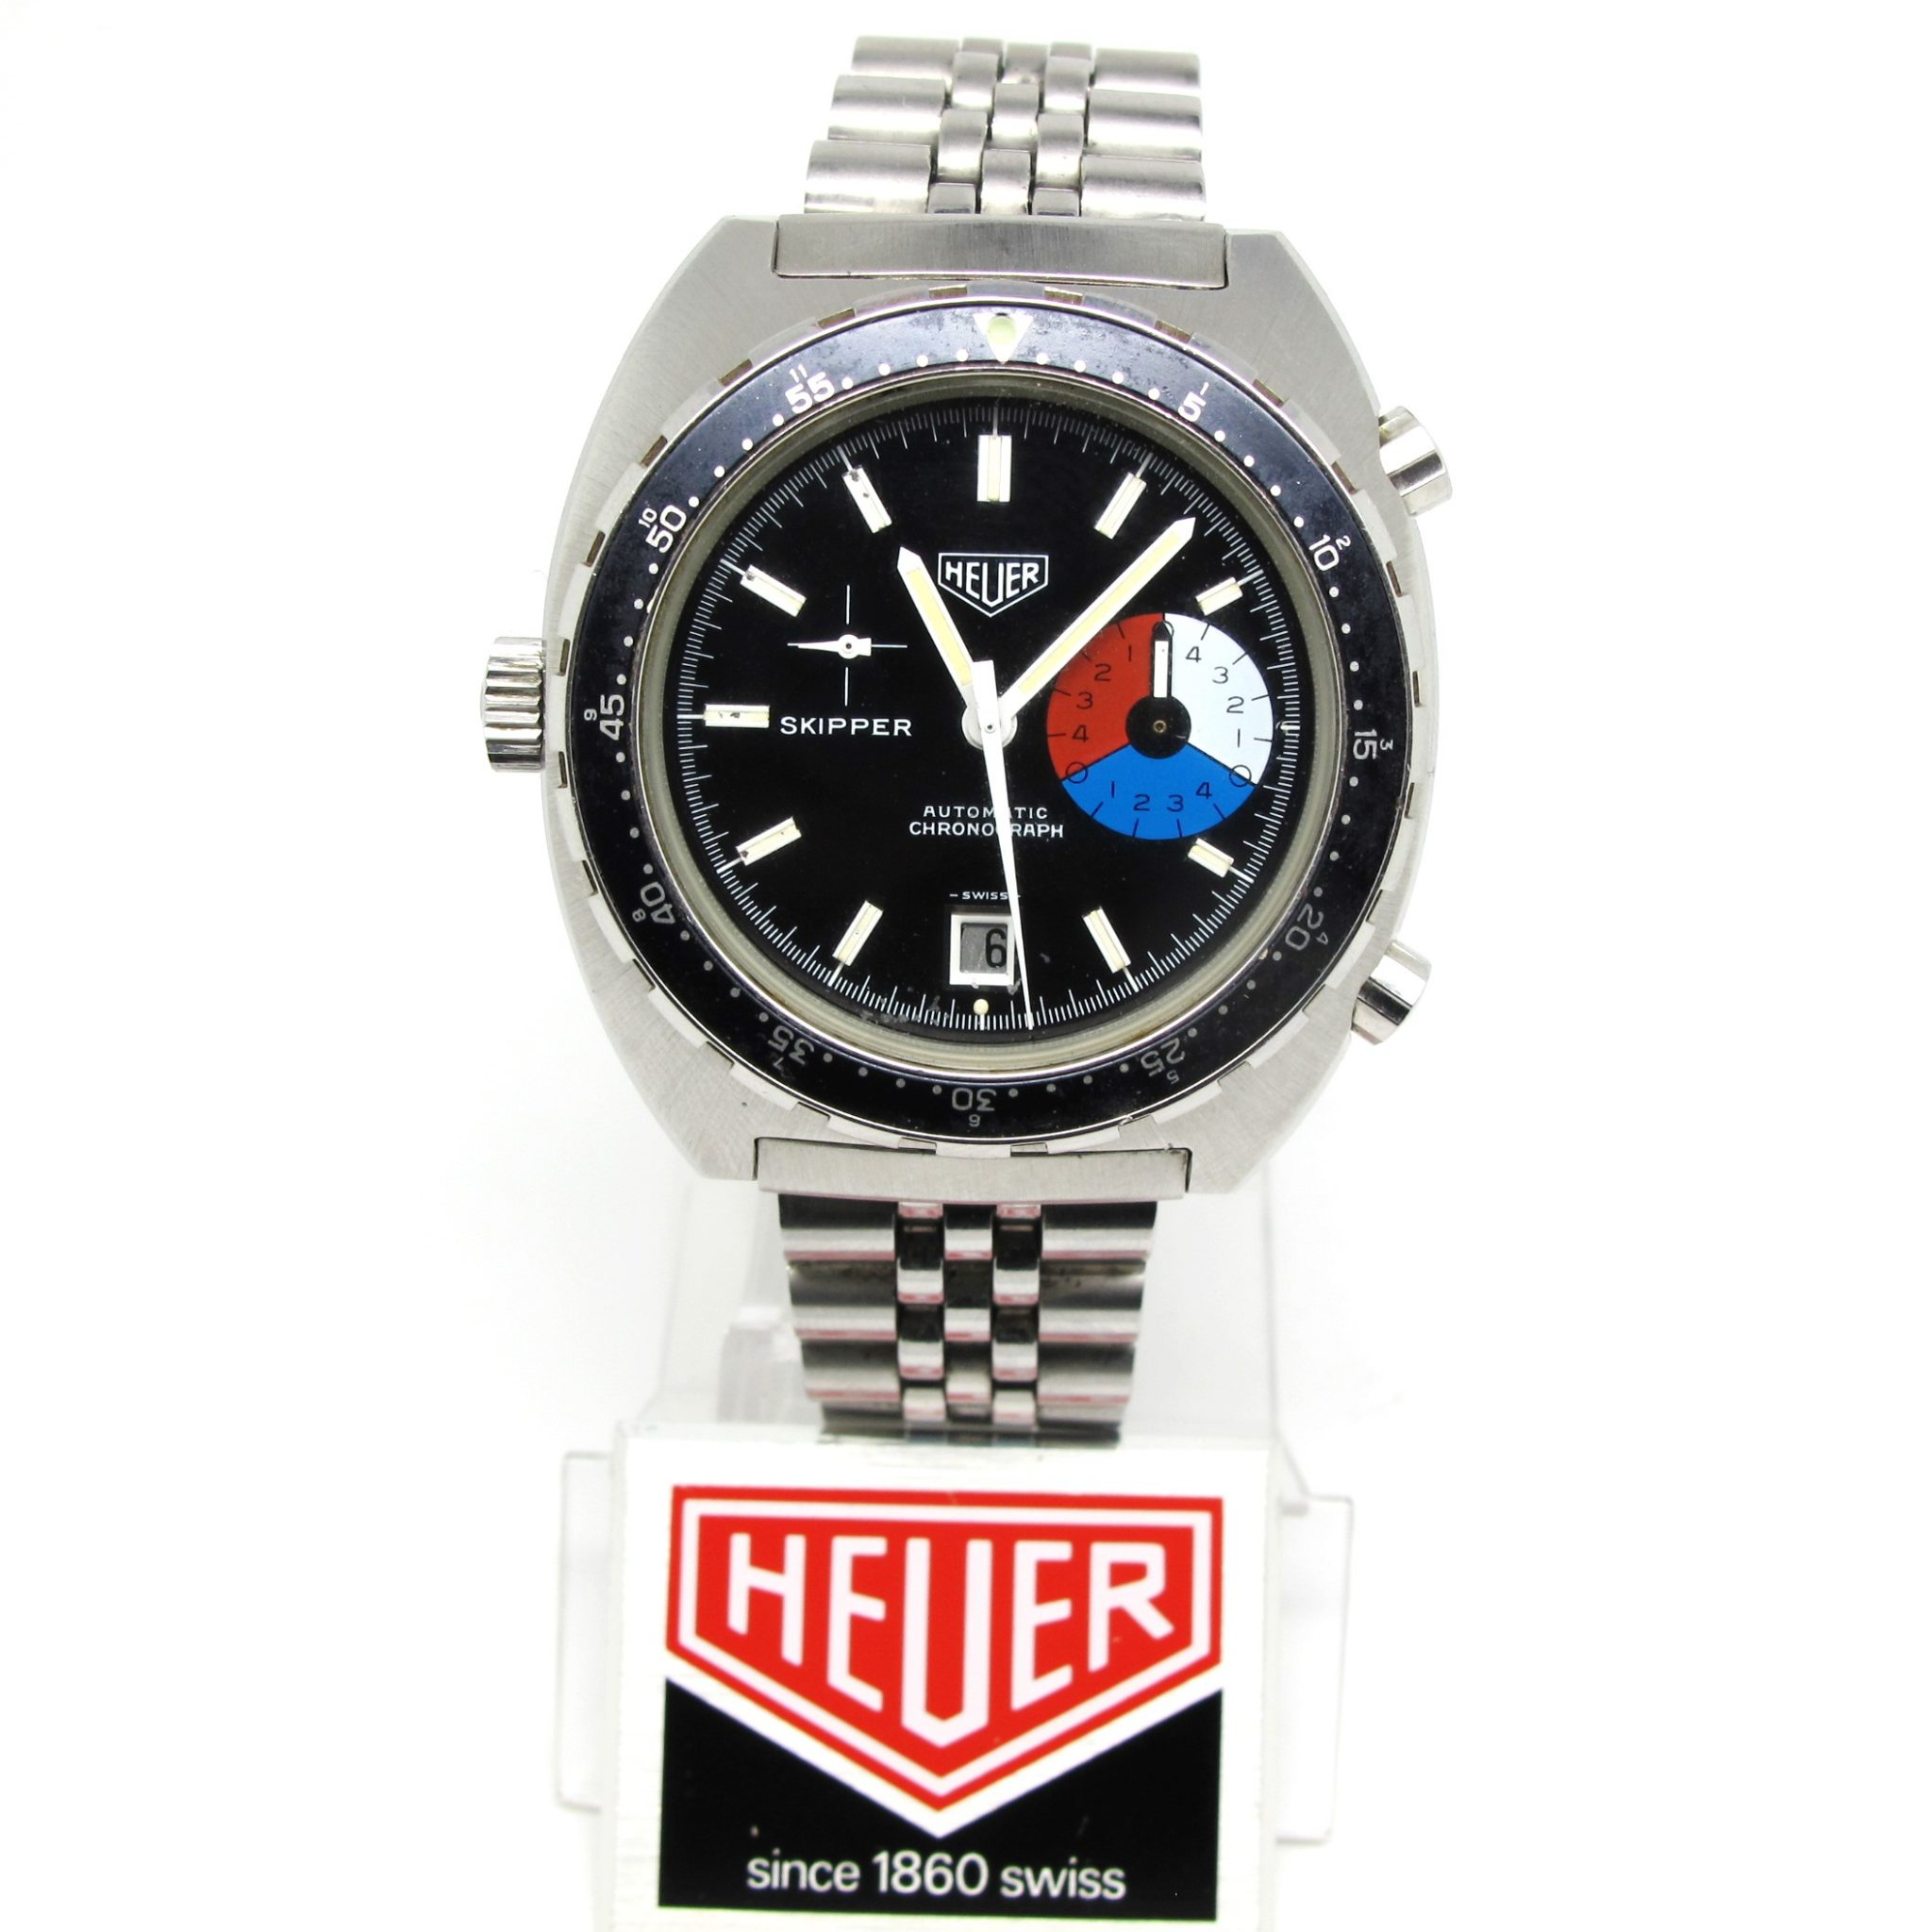 Heuer Skipper final execution